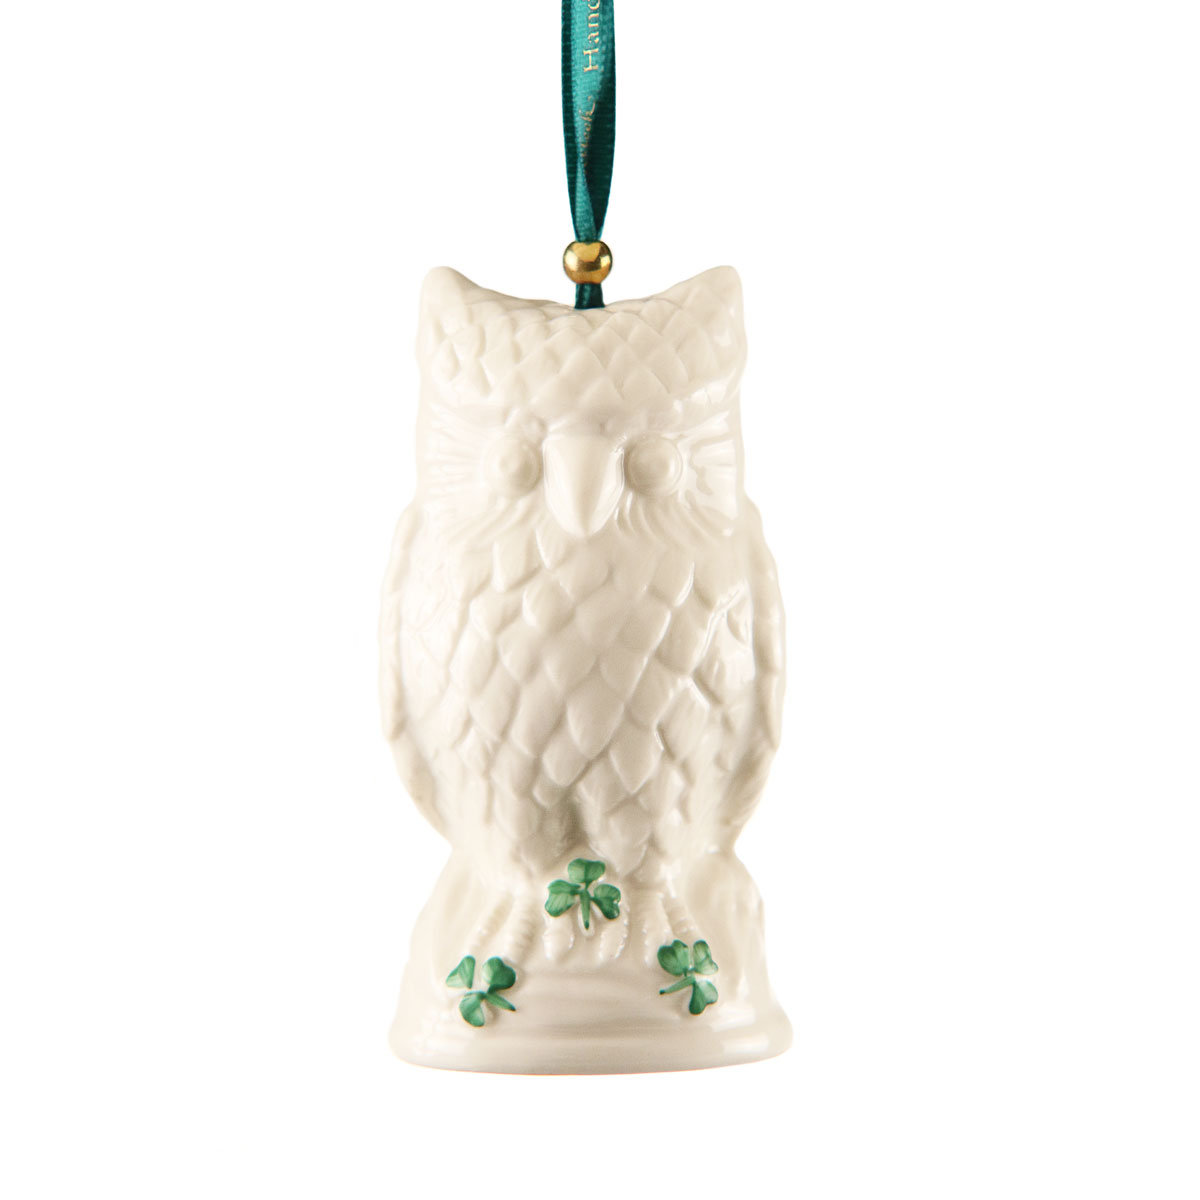 Belleek Winter Owl 2020 Christmas Ornament, Limited Edition